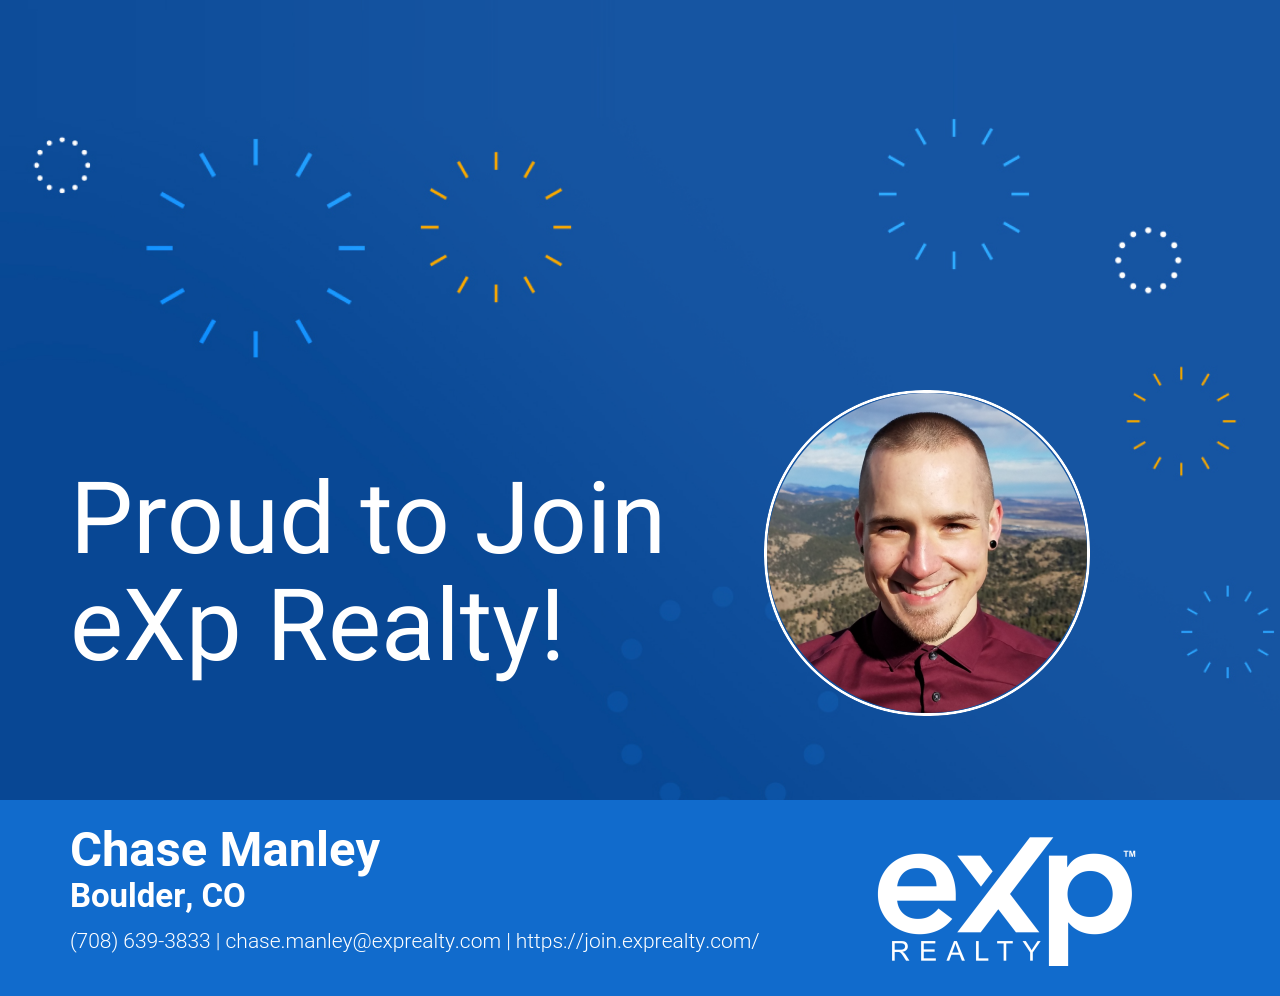 eXp Realty Welcomes Chase Manley!